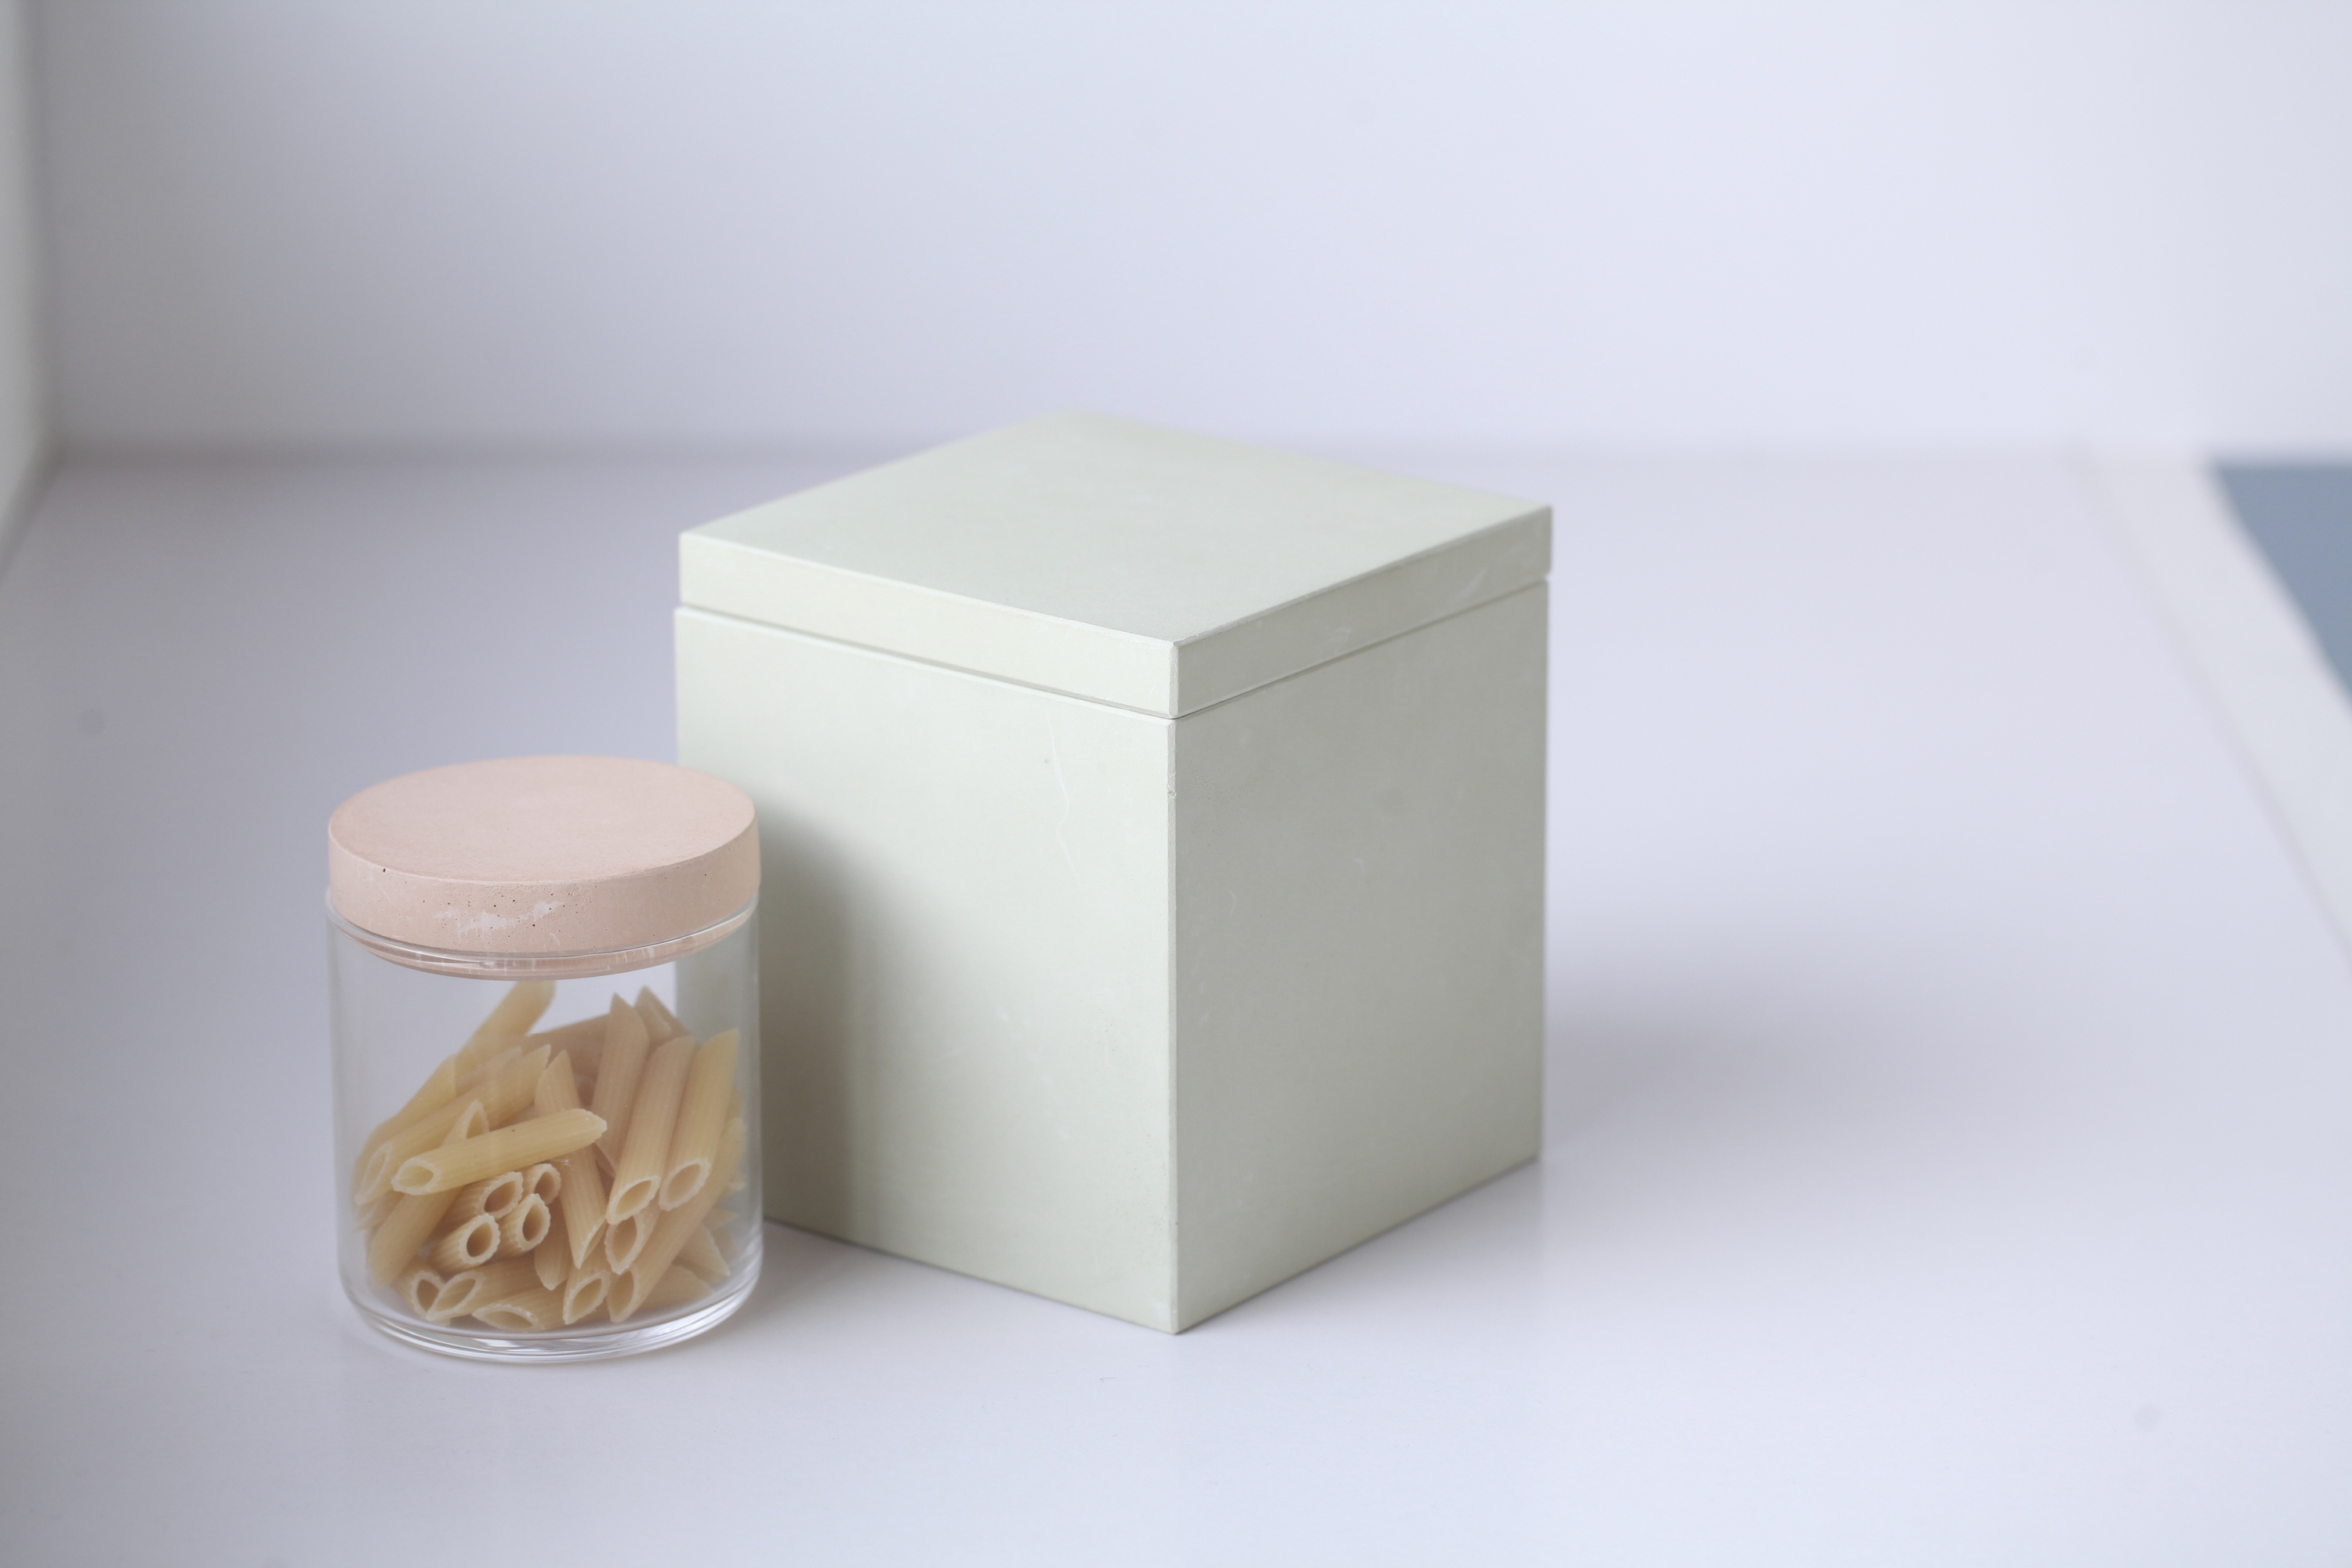 Glass food container and square food container